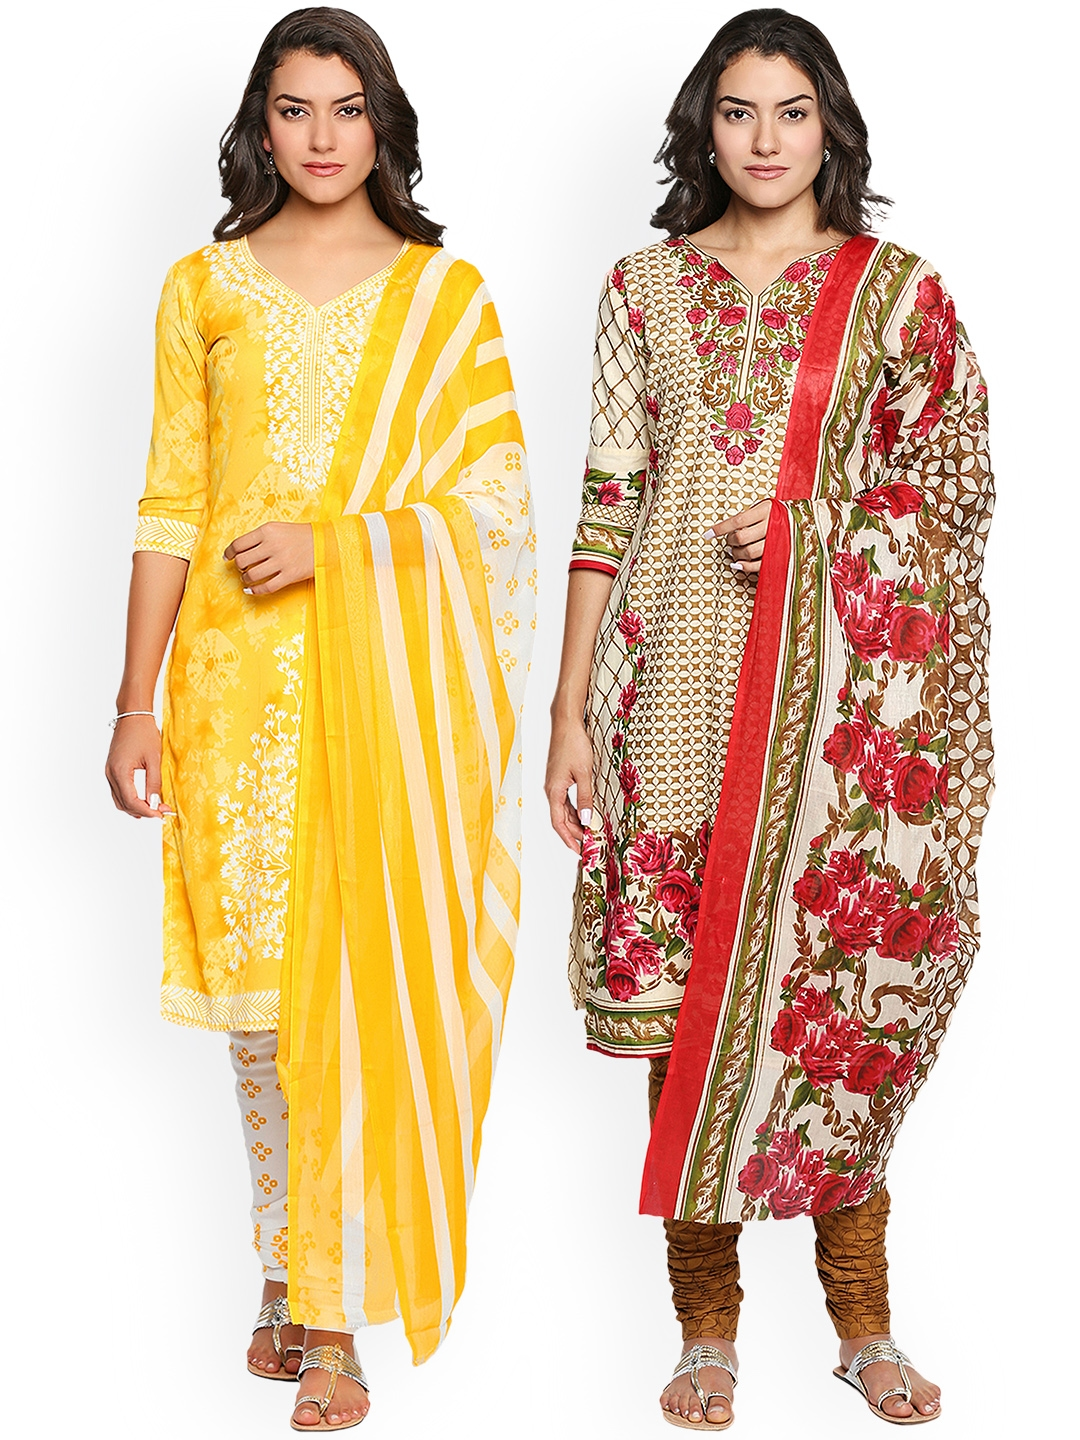 Ishin Pack of 2 Combo Unstitched Salwar Suit Dress Material With Dupatta